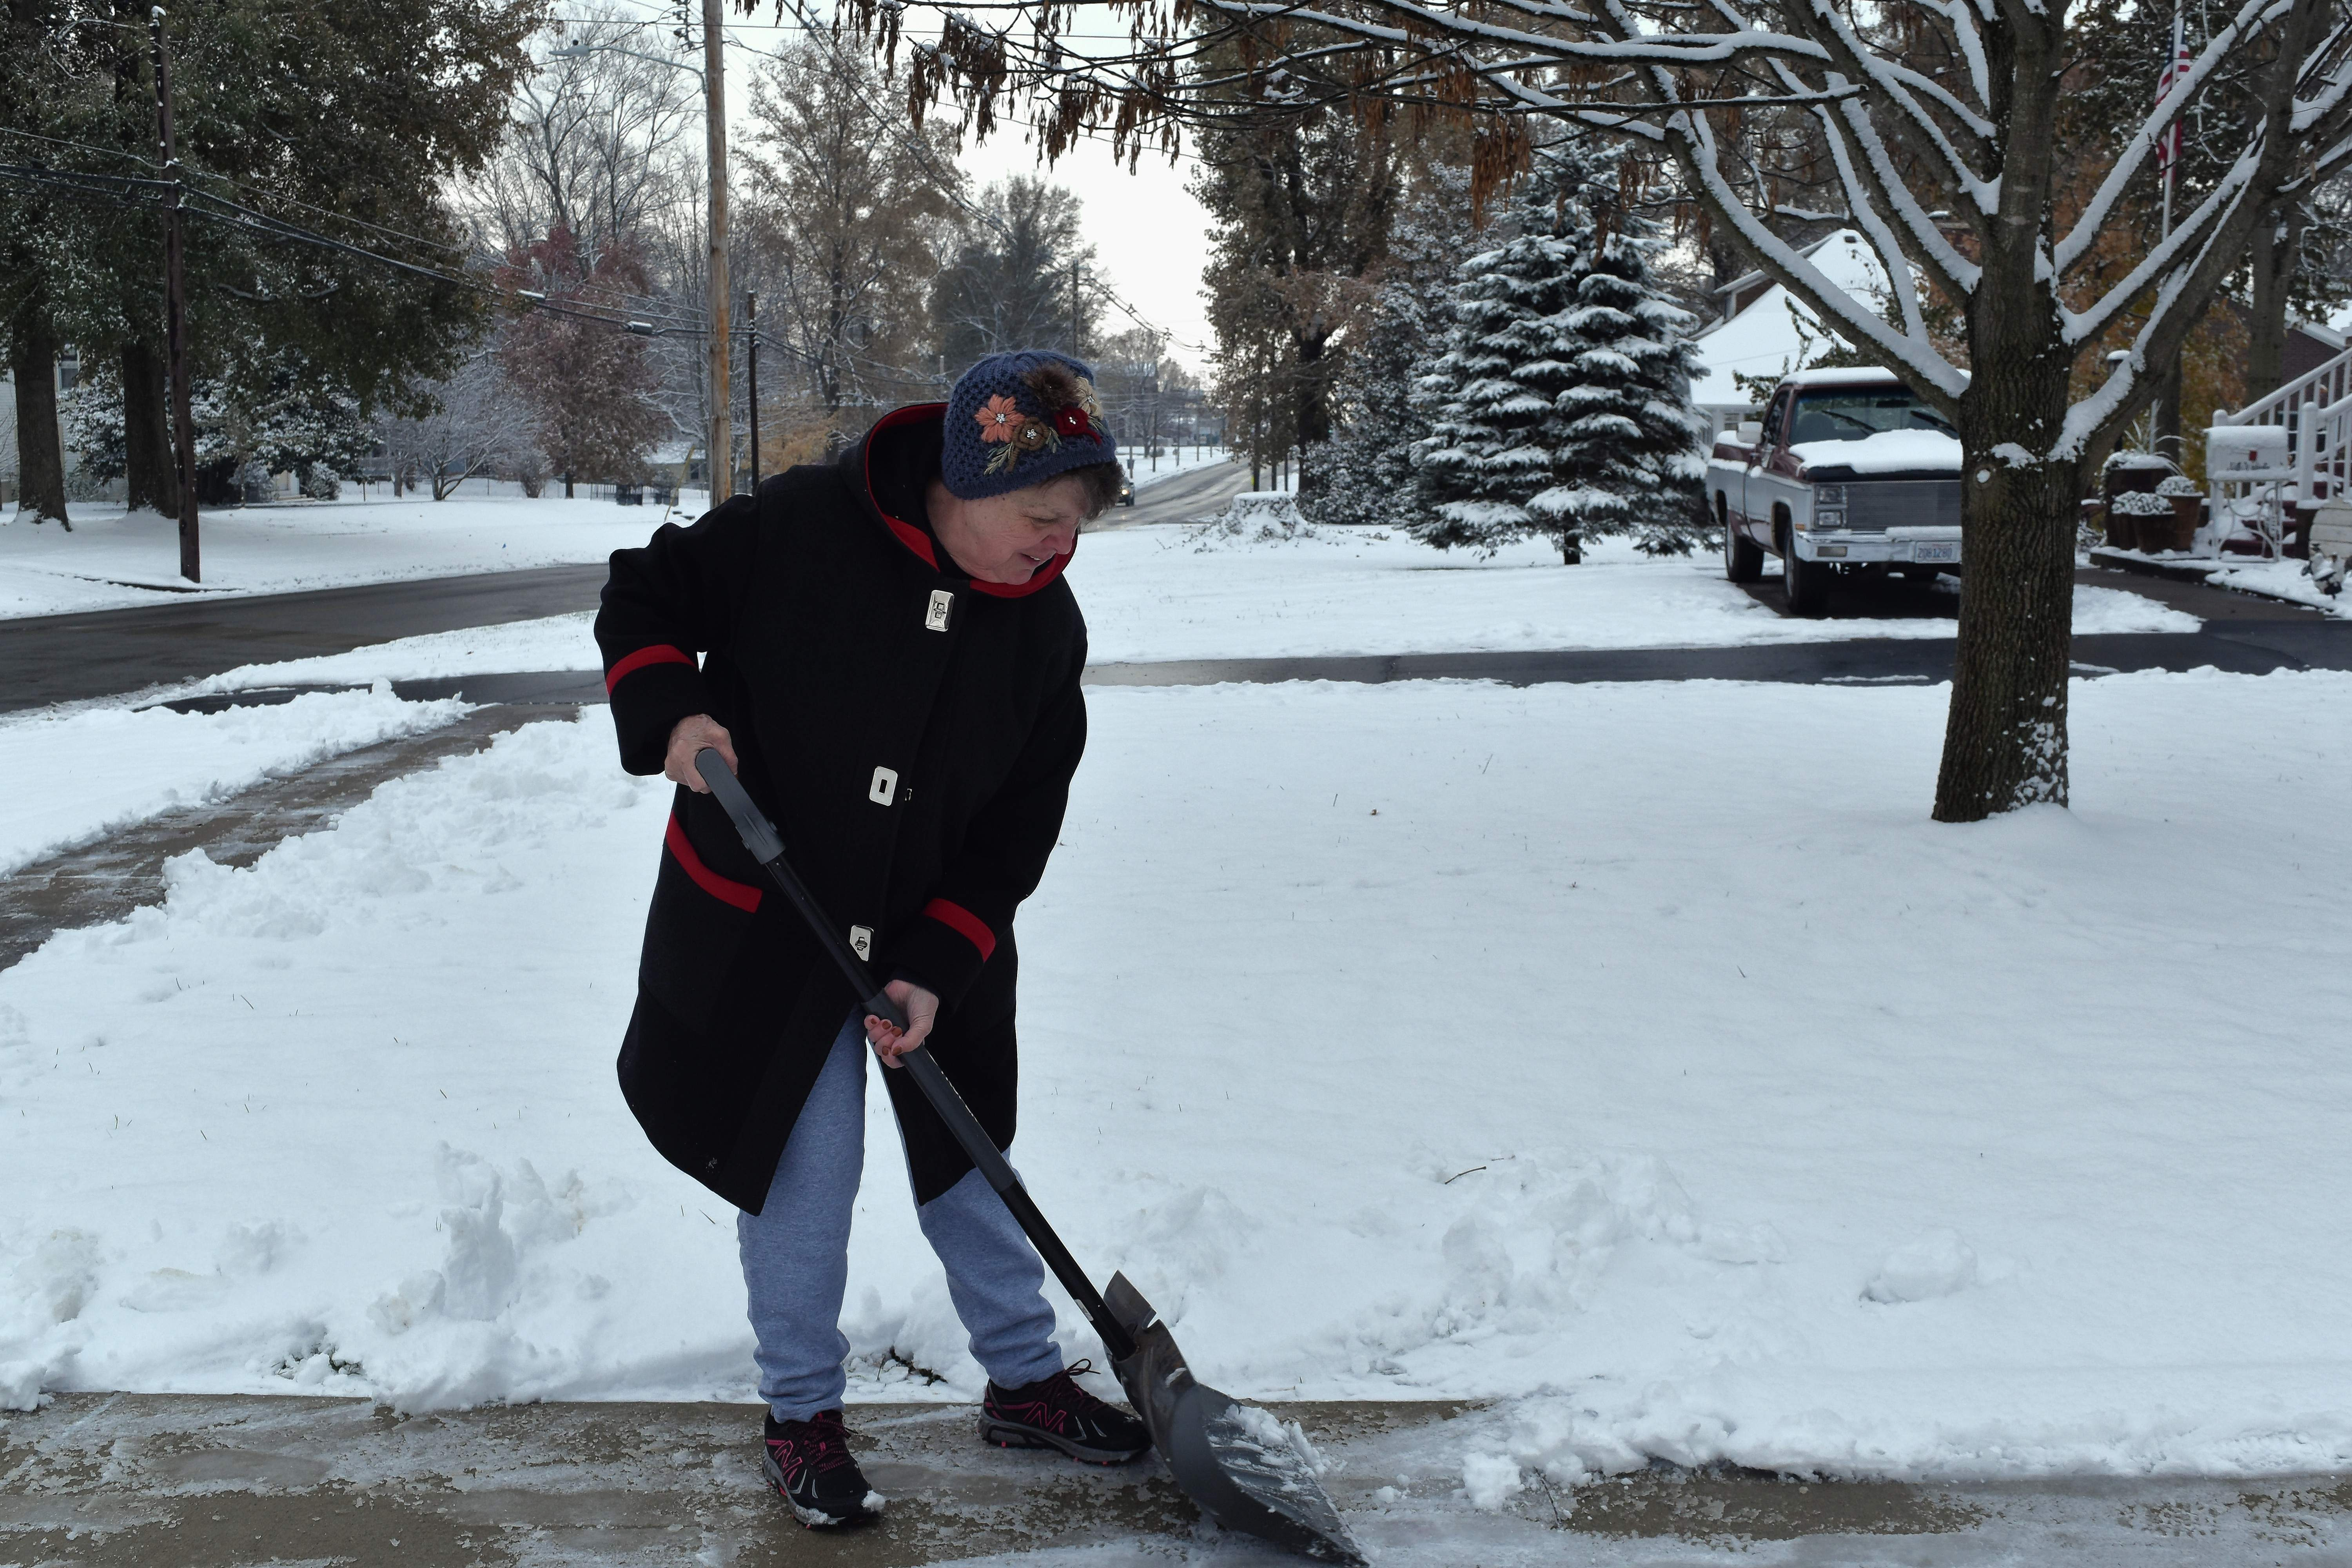 Nancy Grosse of 325 N. Washington St. in Du Quoin works hard Thursday morning to clear the sidewalk in front of her house.